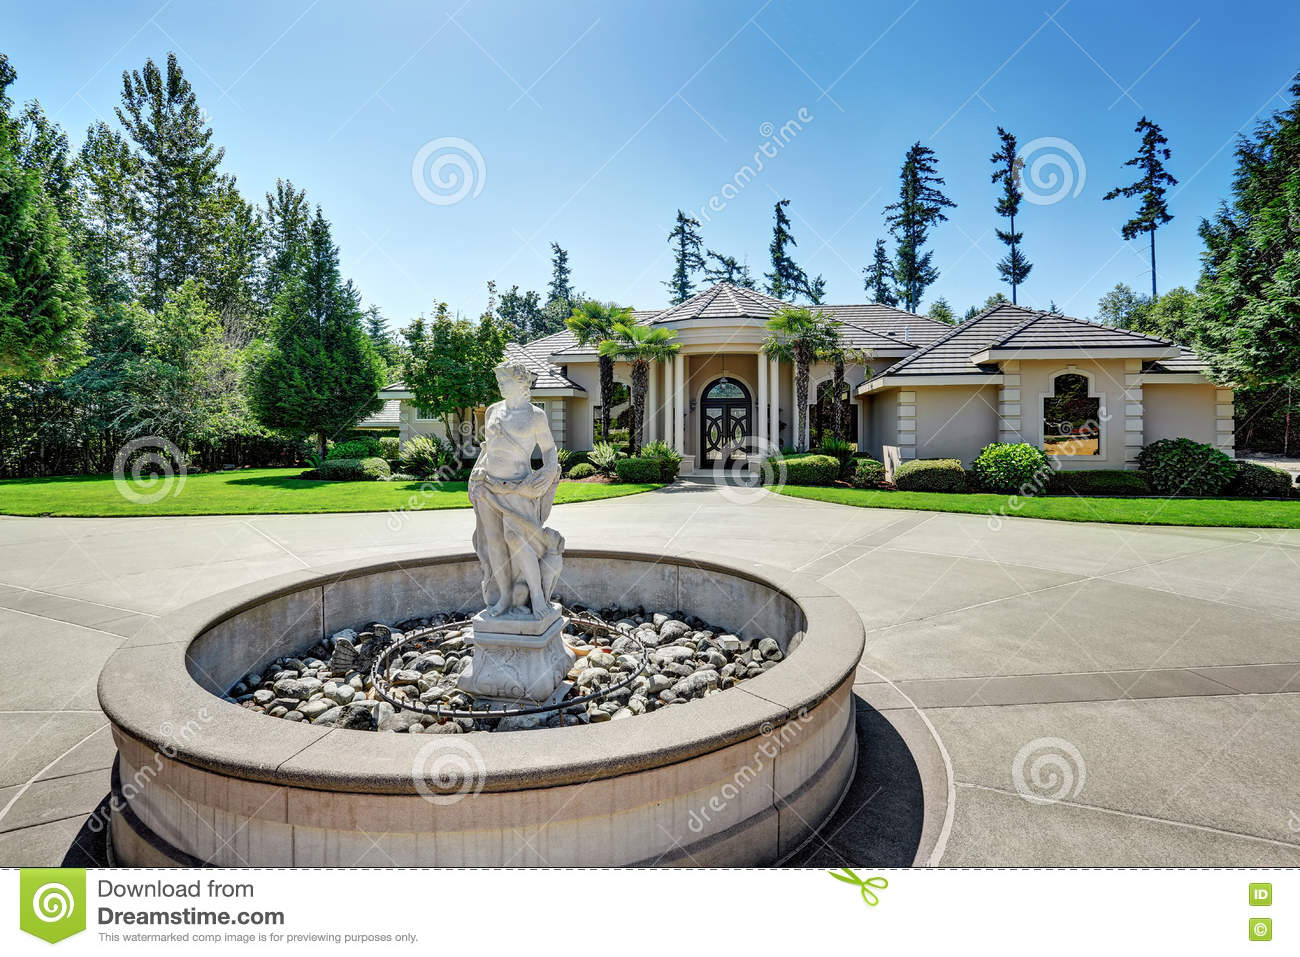 suburban luxury house fountain statue front yard family asphalt driveway residential large windows trees 77540478